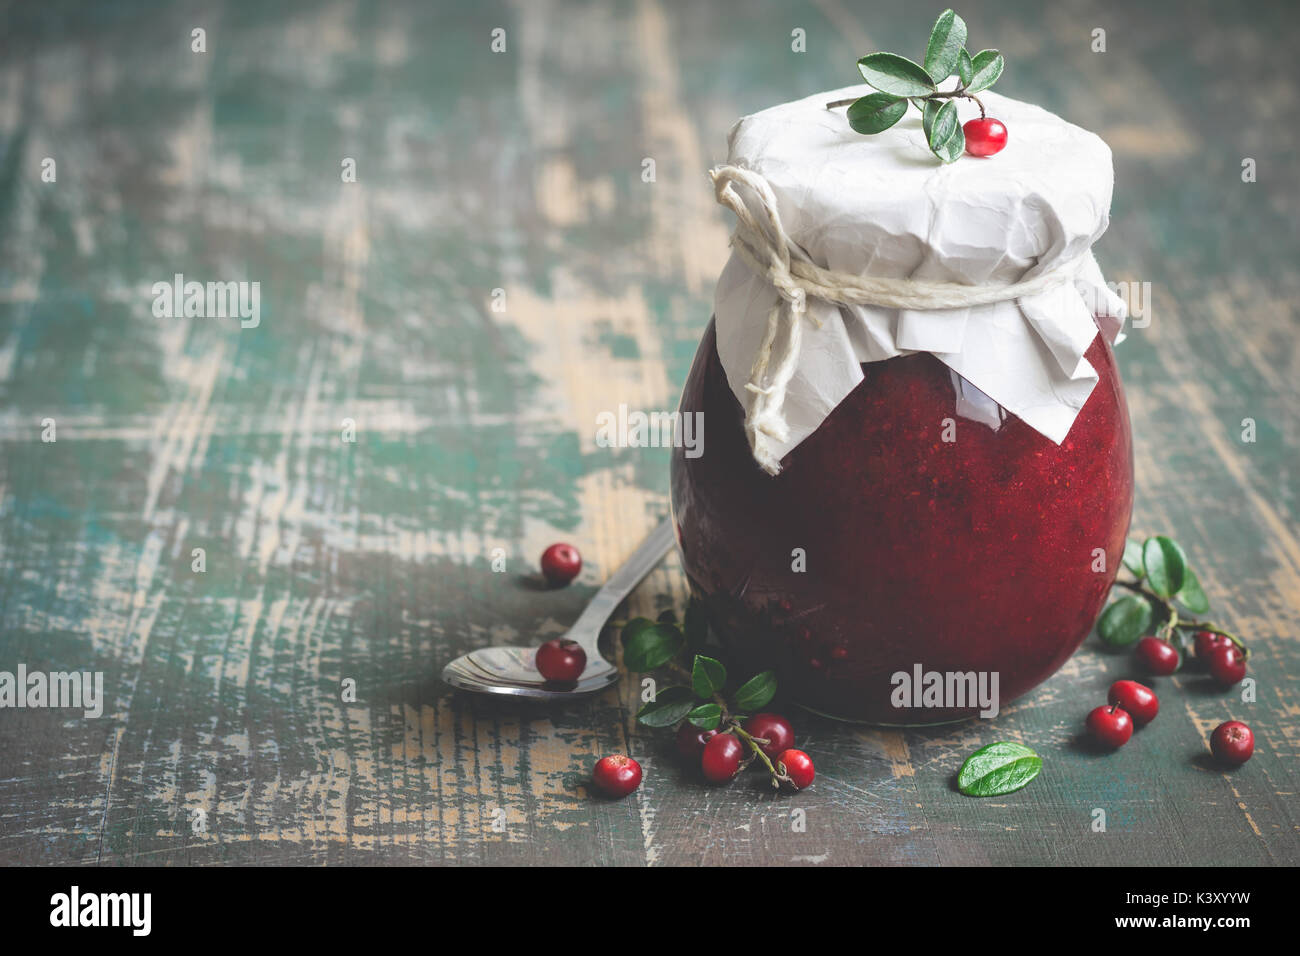 Lingonberry jam in jar and fresh berries. Selective focus, copy space  - Stock Image